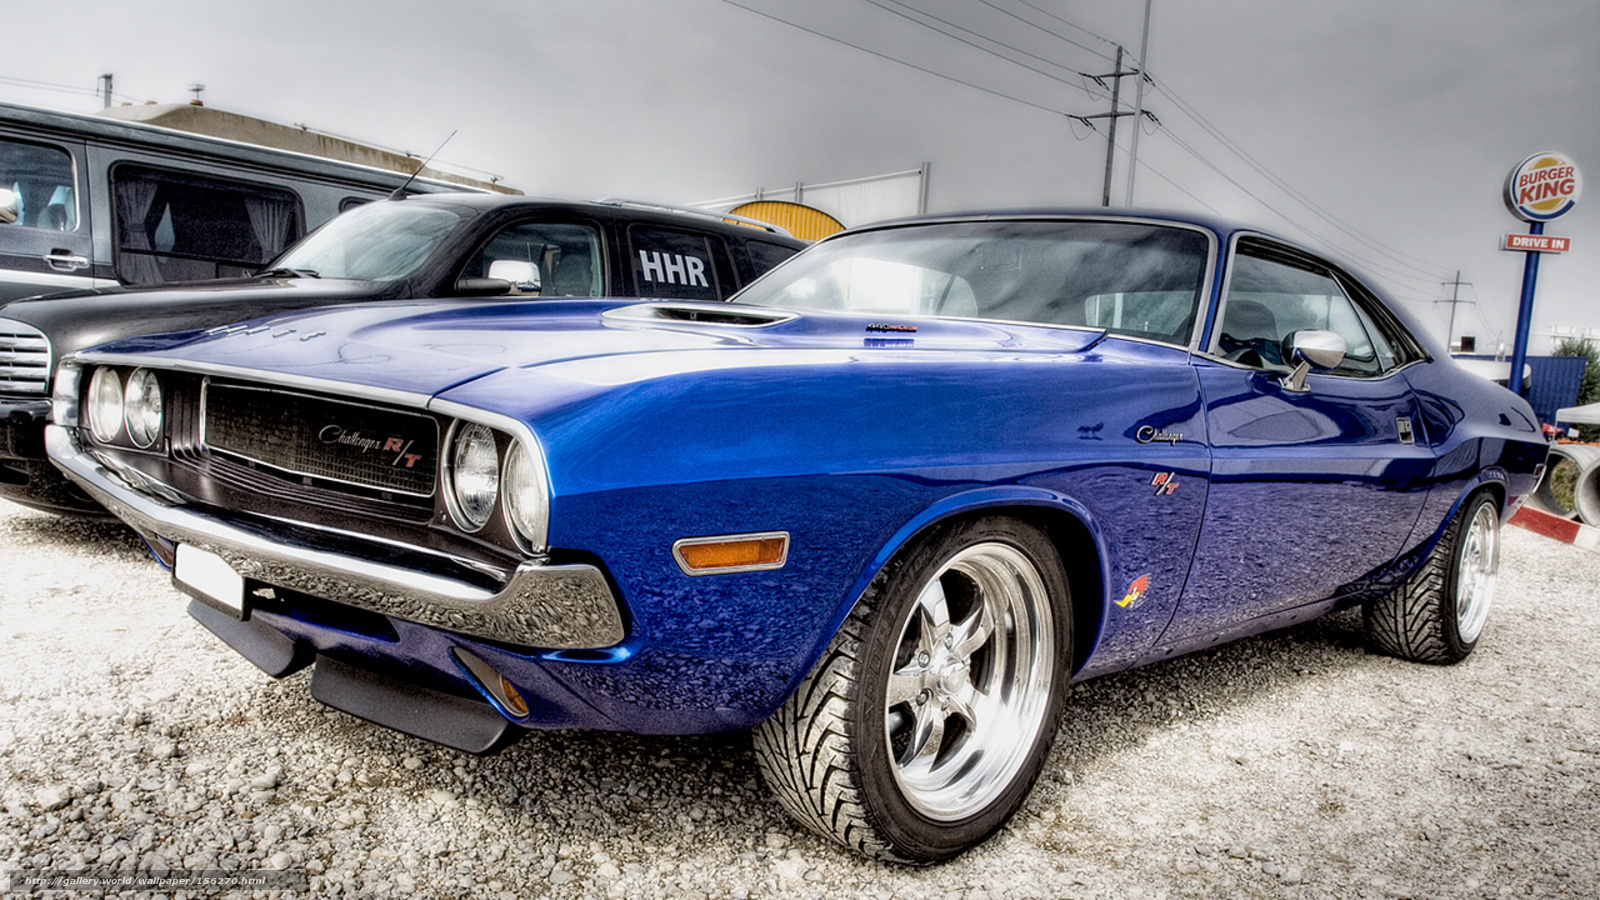 Download Wallpaper Dodge Muscle Car Cars Machinery Free